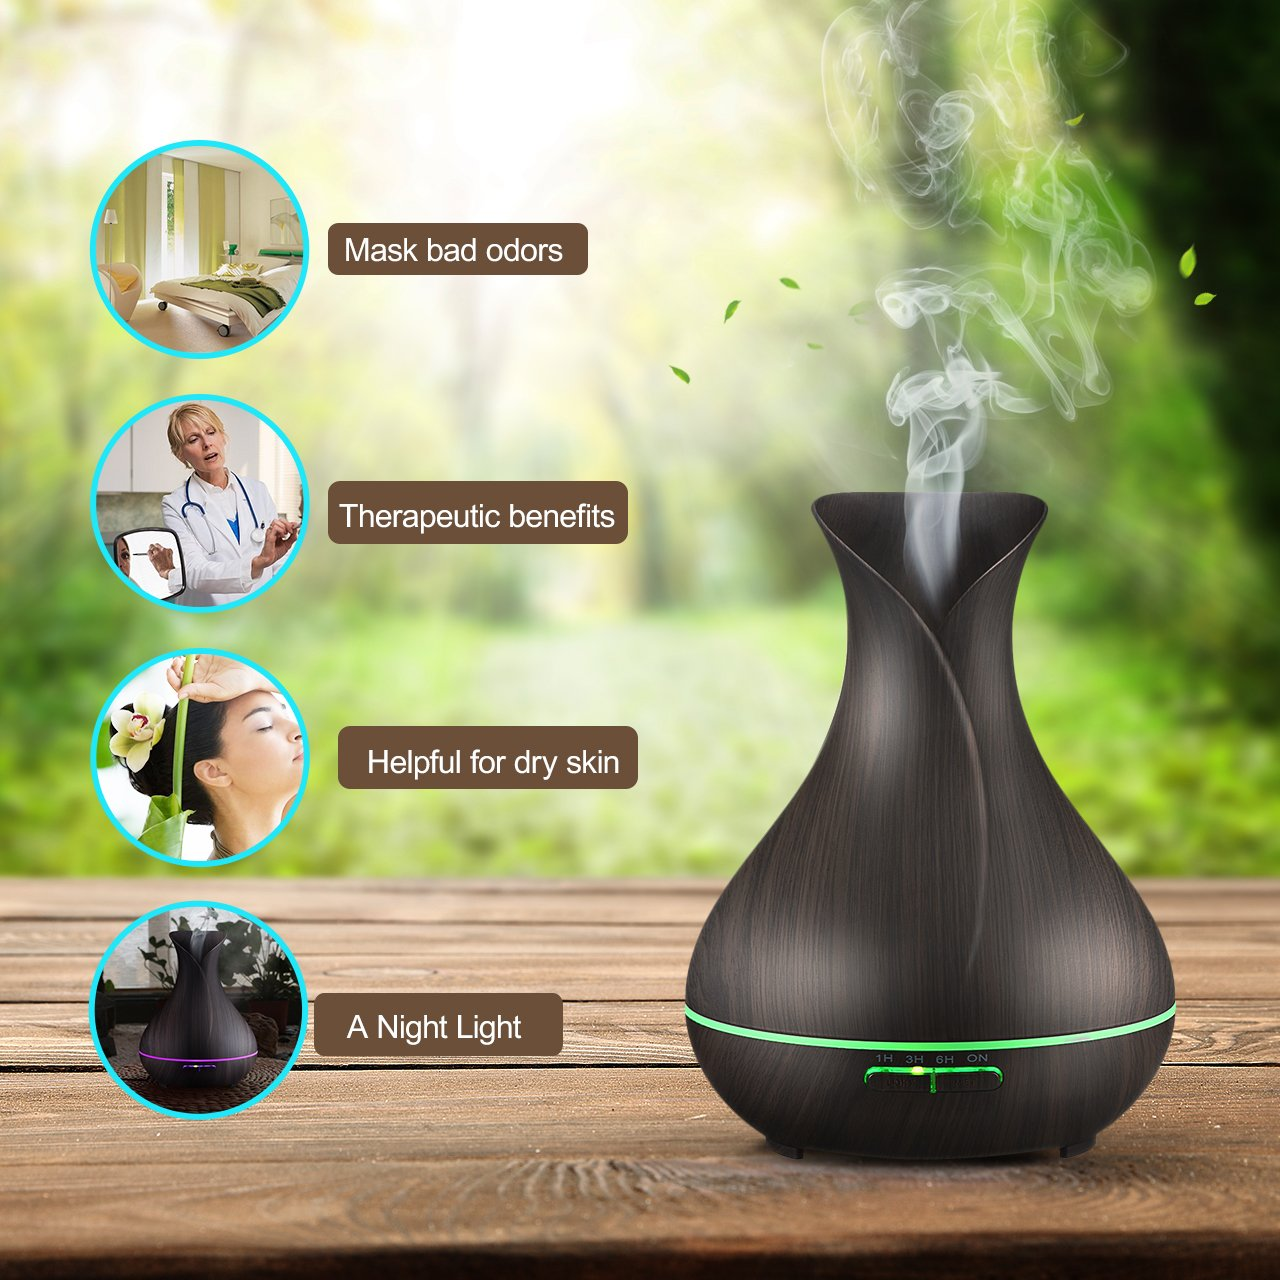 VicTsing 400ml Aromatherapy Essential Oil Diffuser, Ultrasonic Cool Mist Humidifier with Wood Grain Design, 4 Timer Settings for Office, Room, Spa by VicTsing (Image #4)